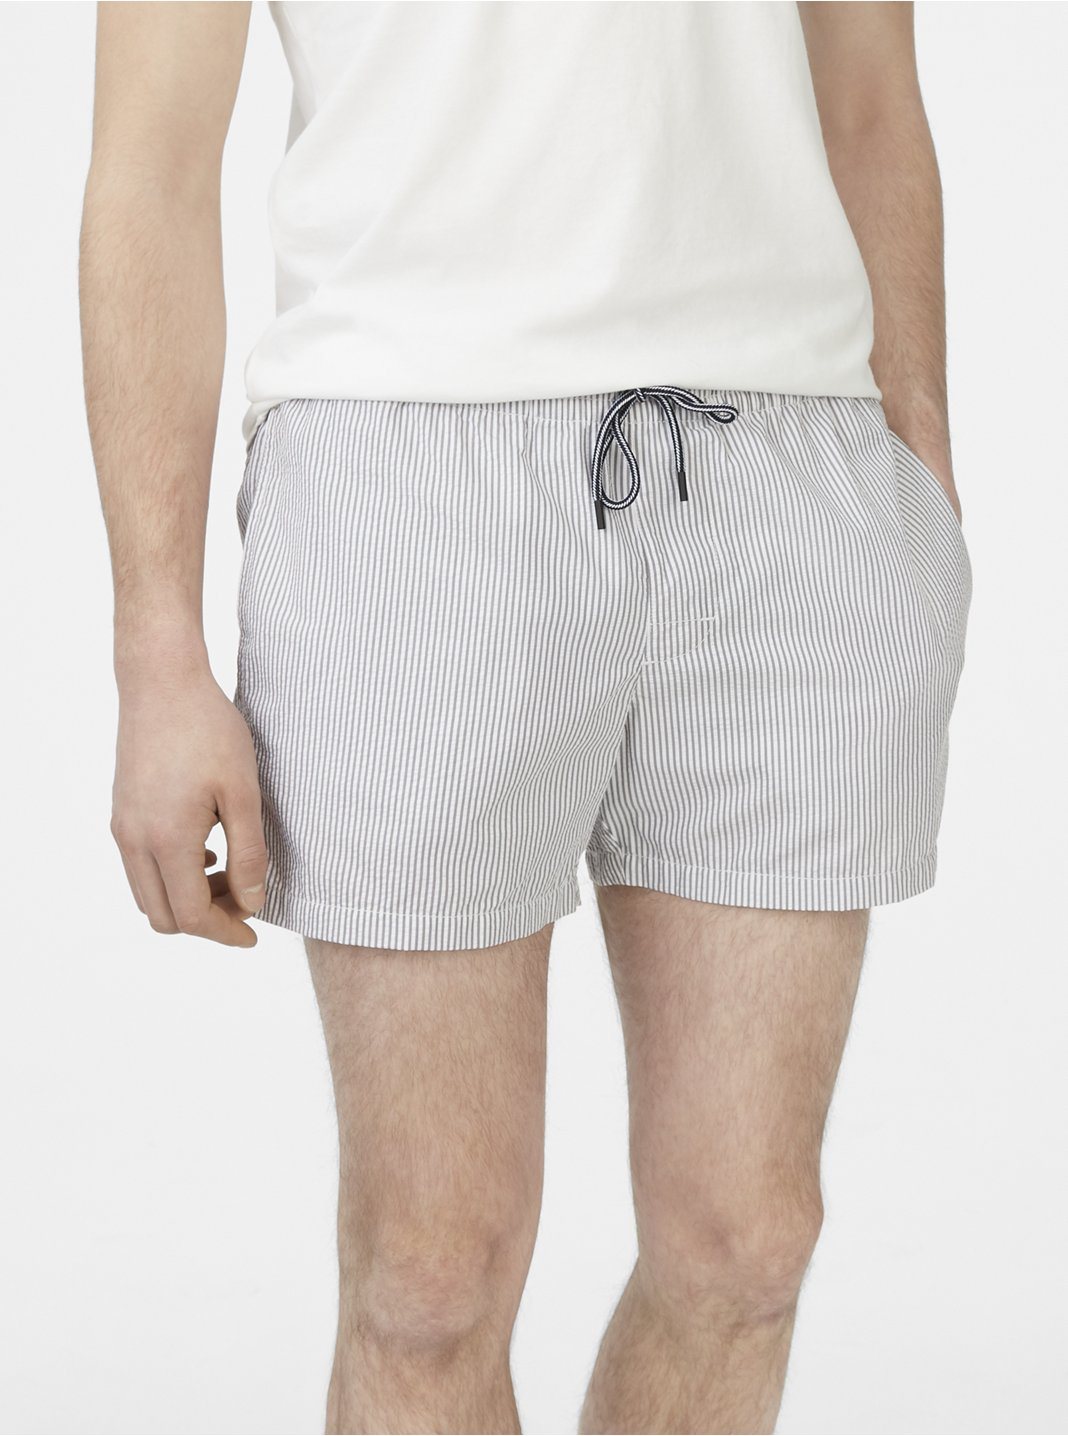 Arlen Seersucker Swim Trunk